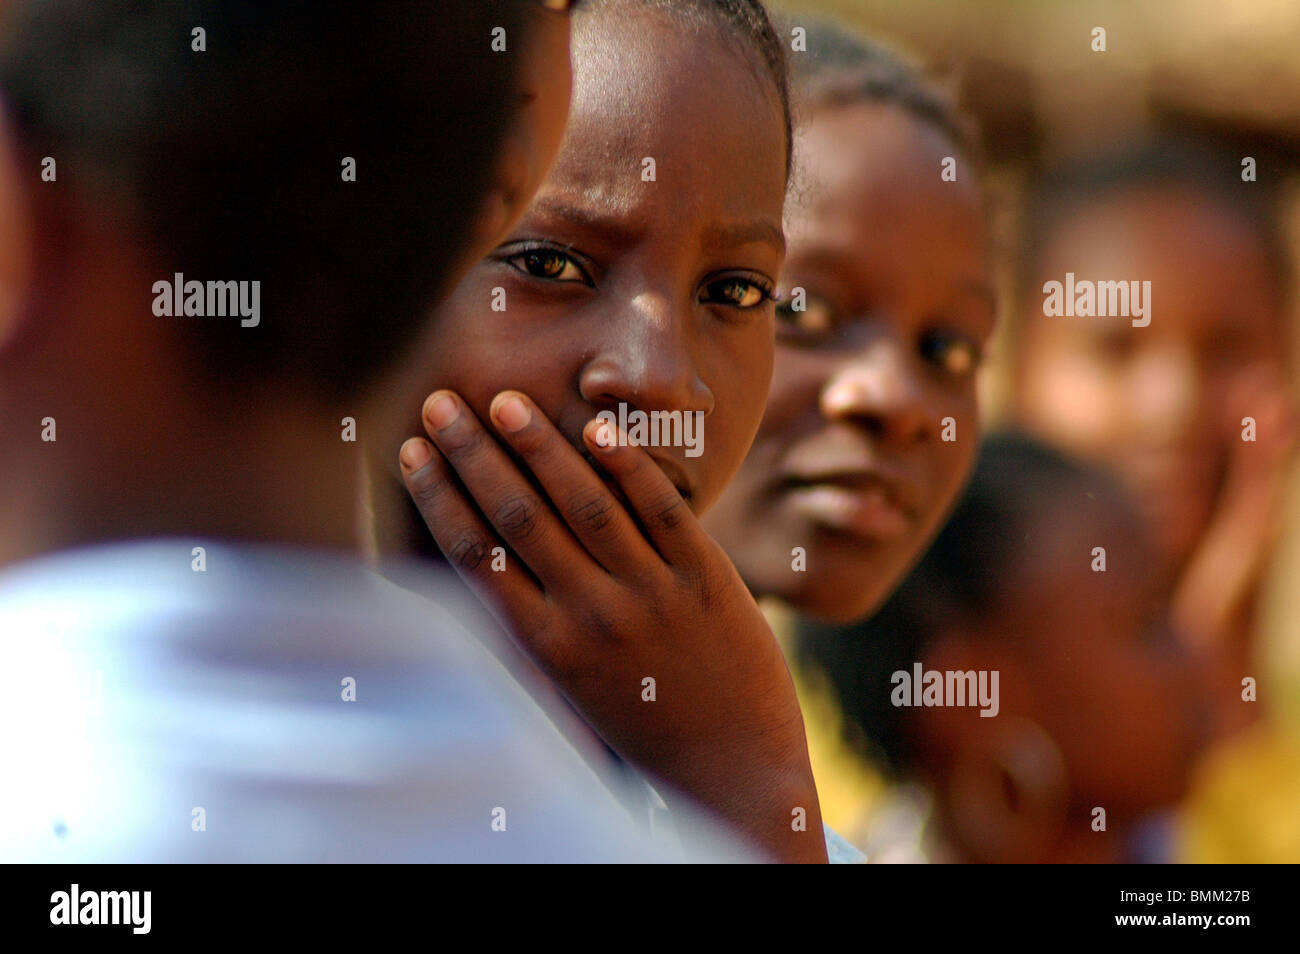 Niger, Niamey, Portrait of african adolescent girls with traditionnal plaits - Stock Image